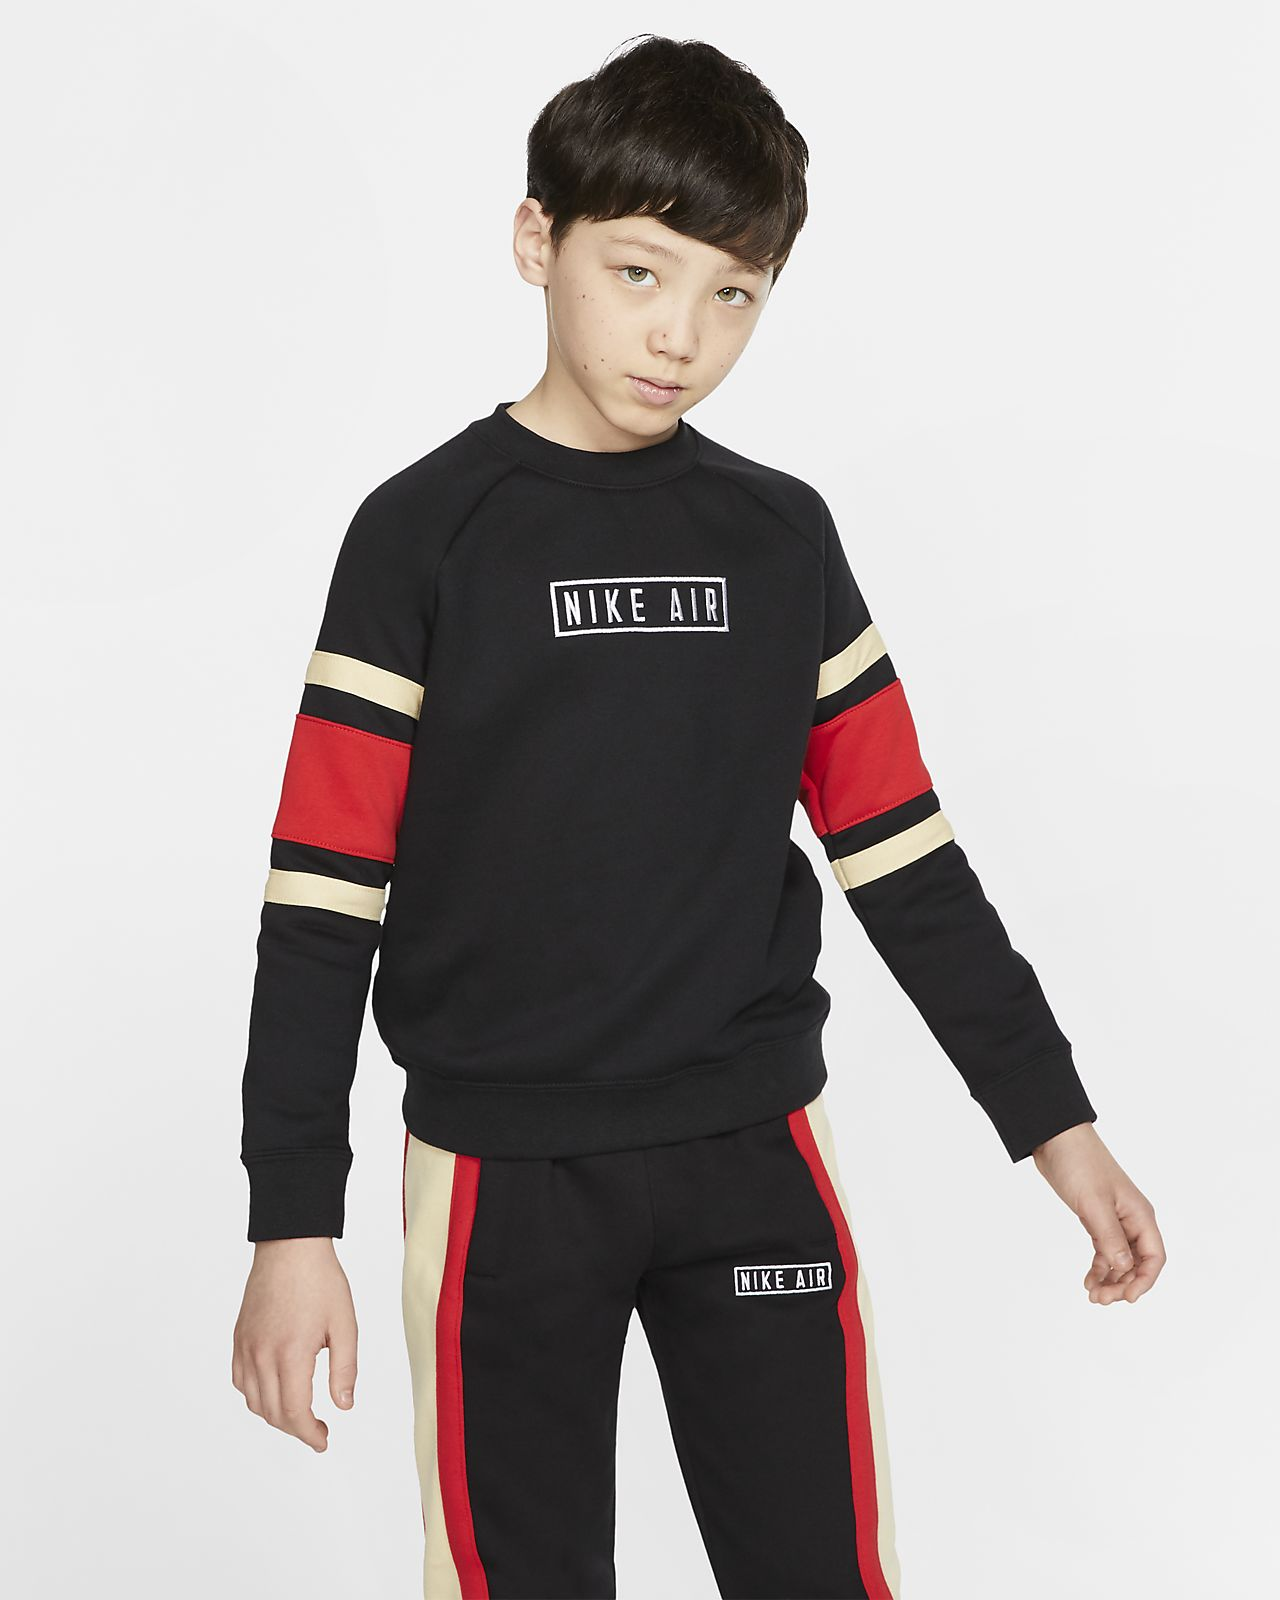 Nike Air Older Kids' Crew